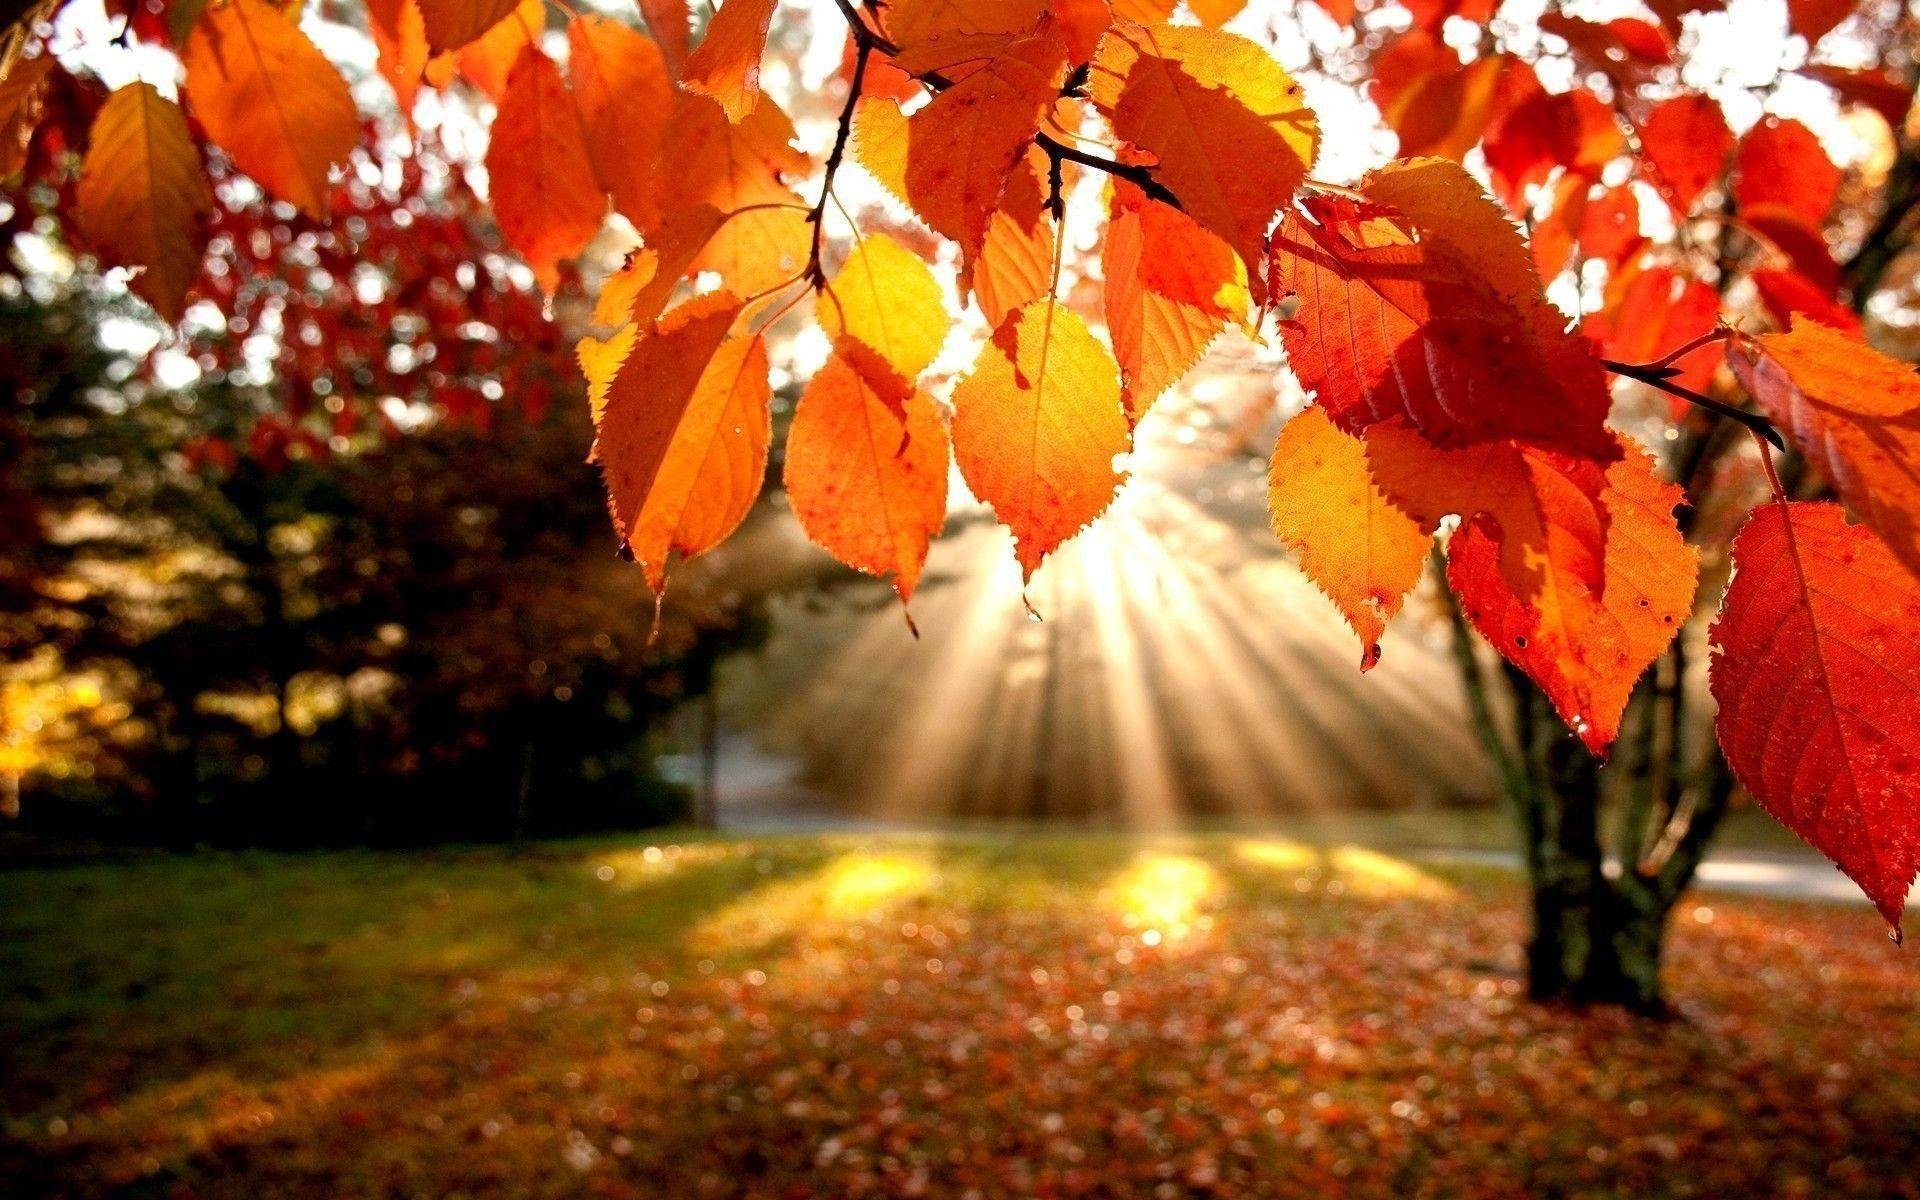 How to Use Autumn Wallpaper to Make Your Home Look Great